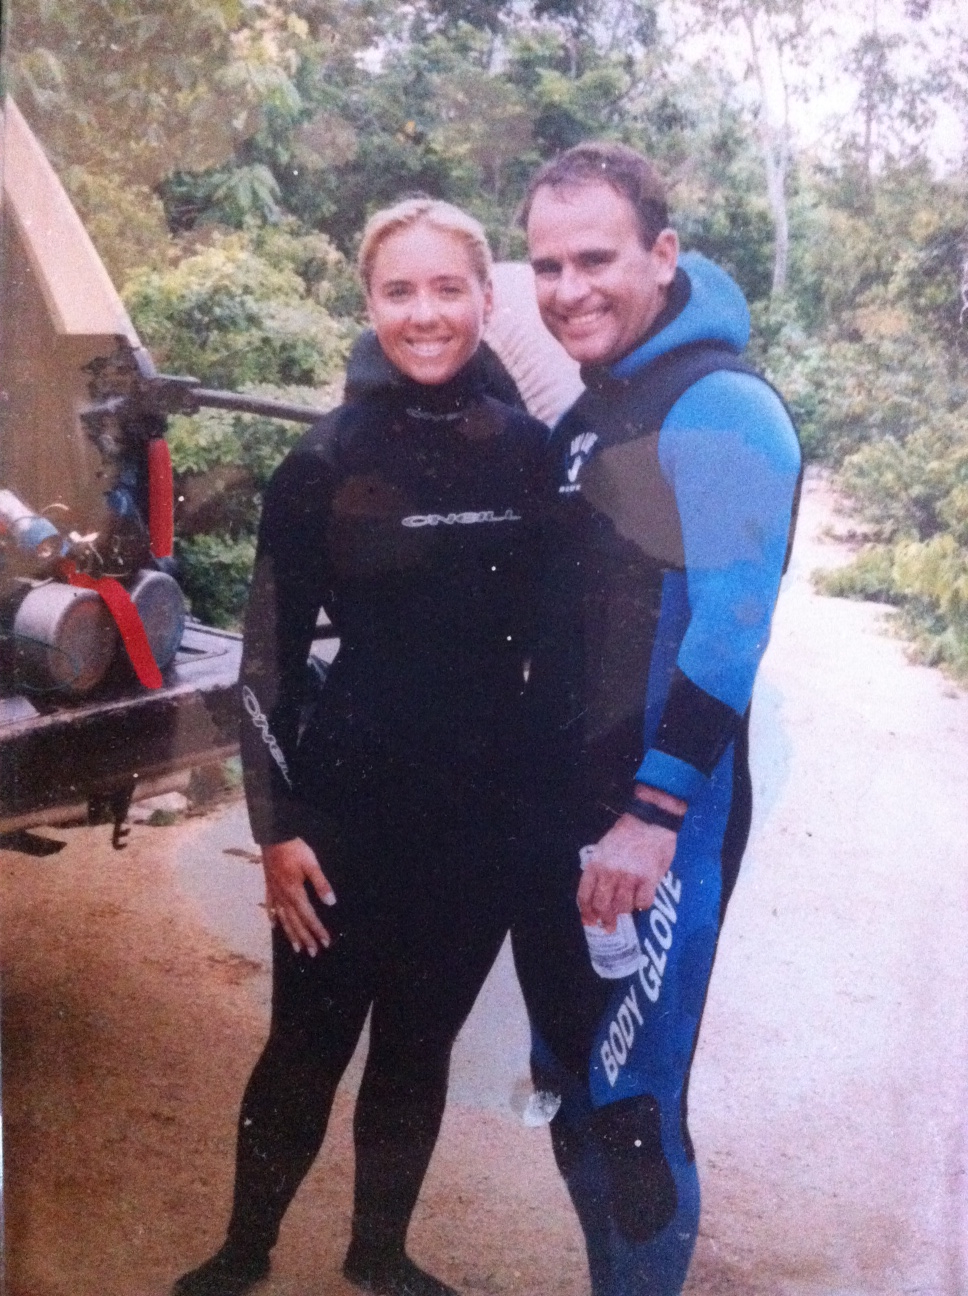 Cave diving in the Yucatan